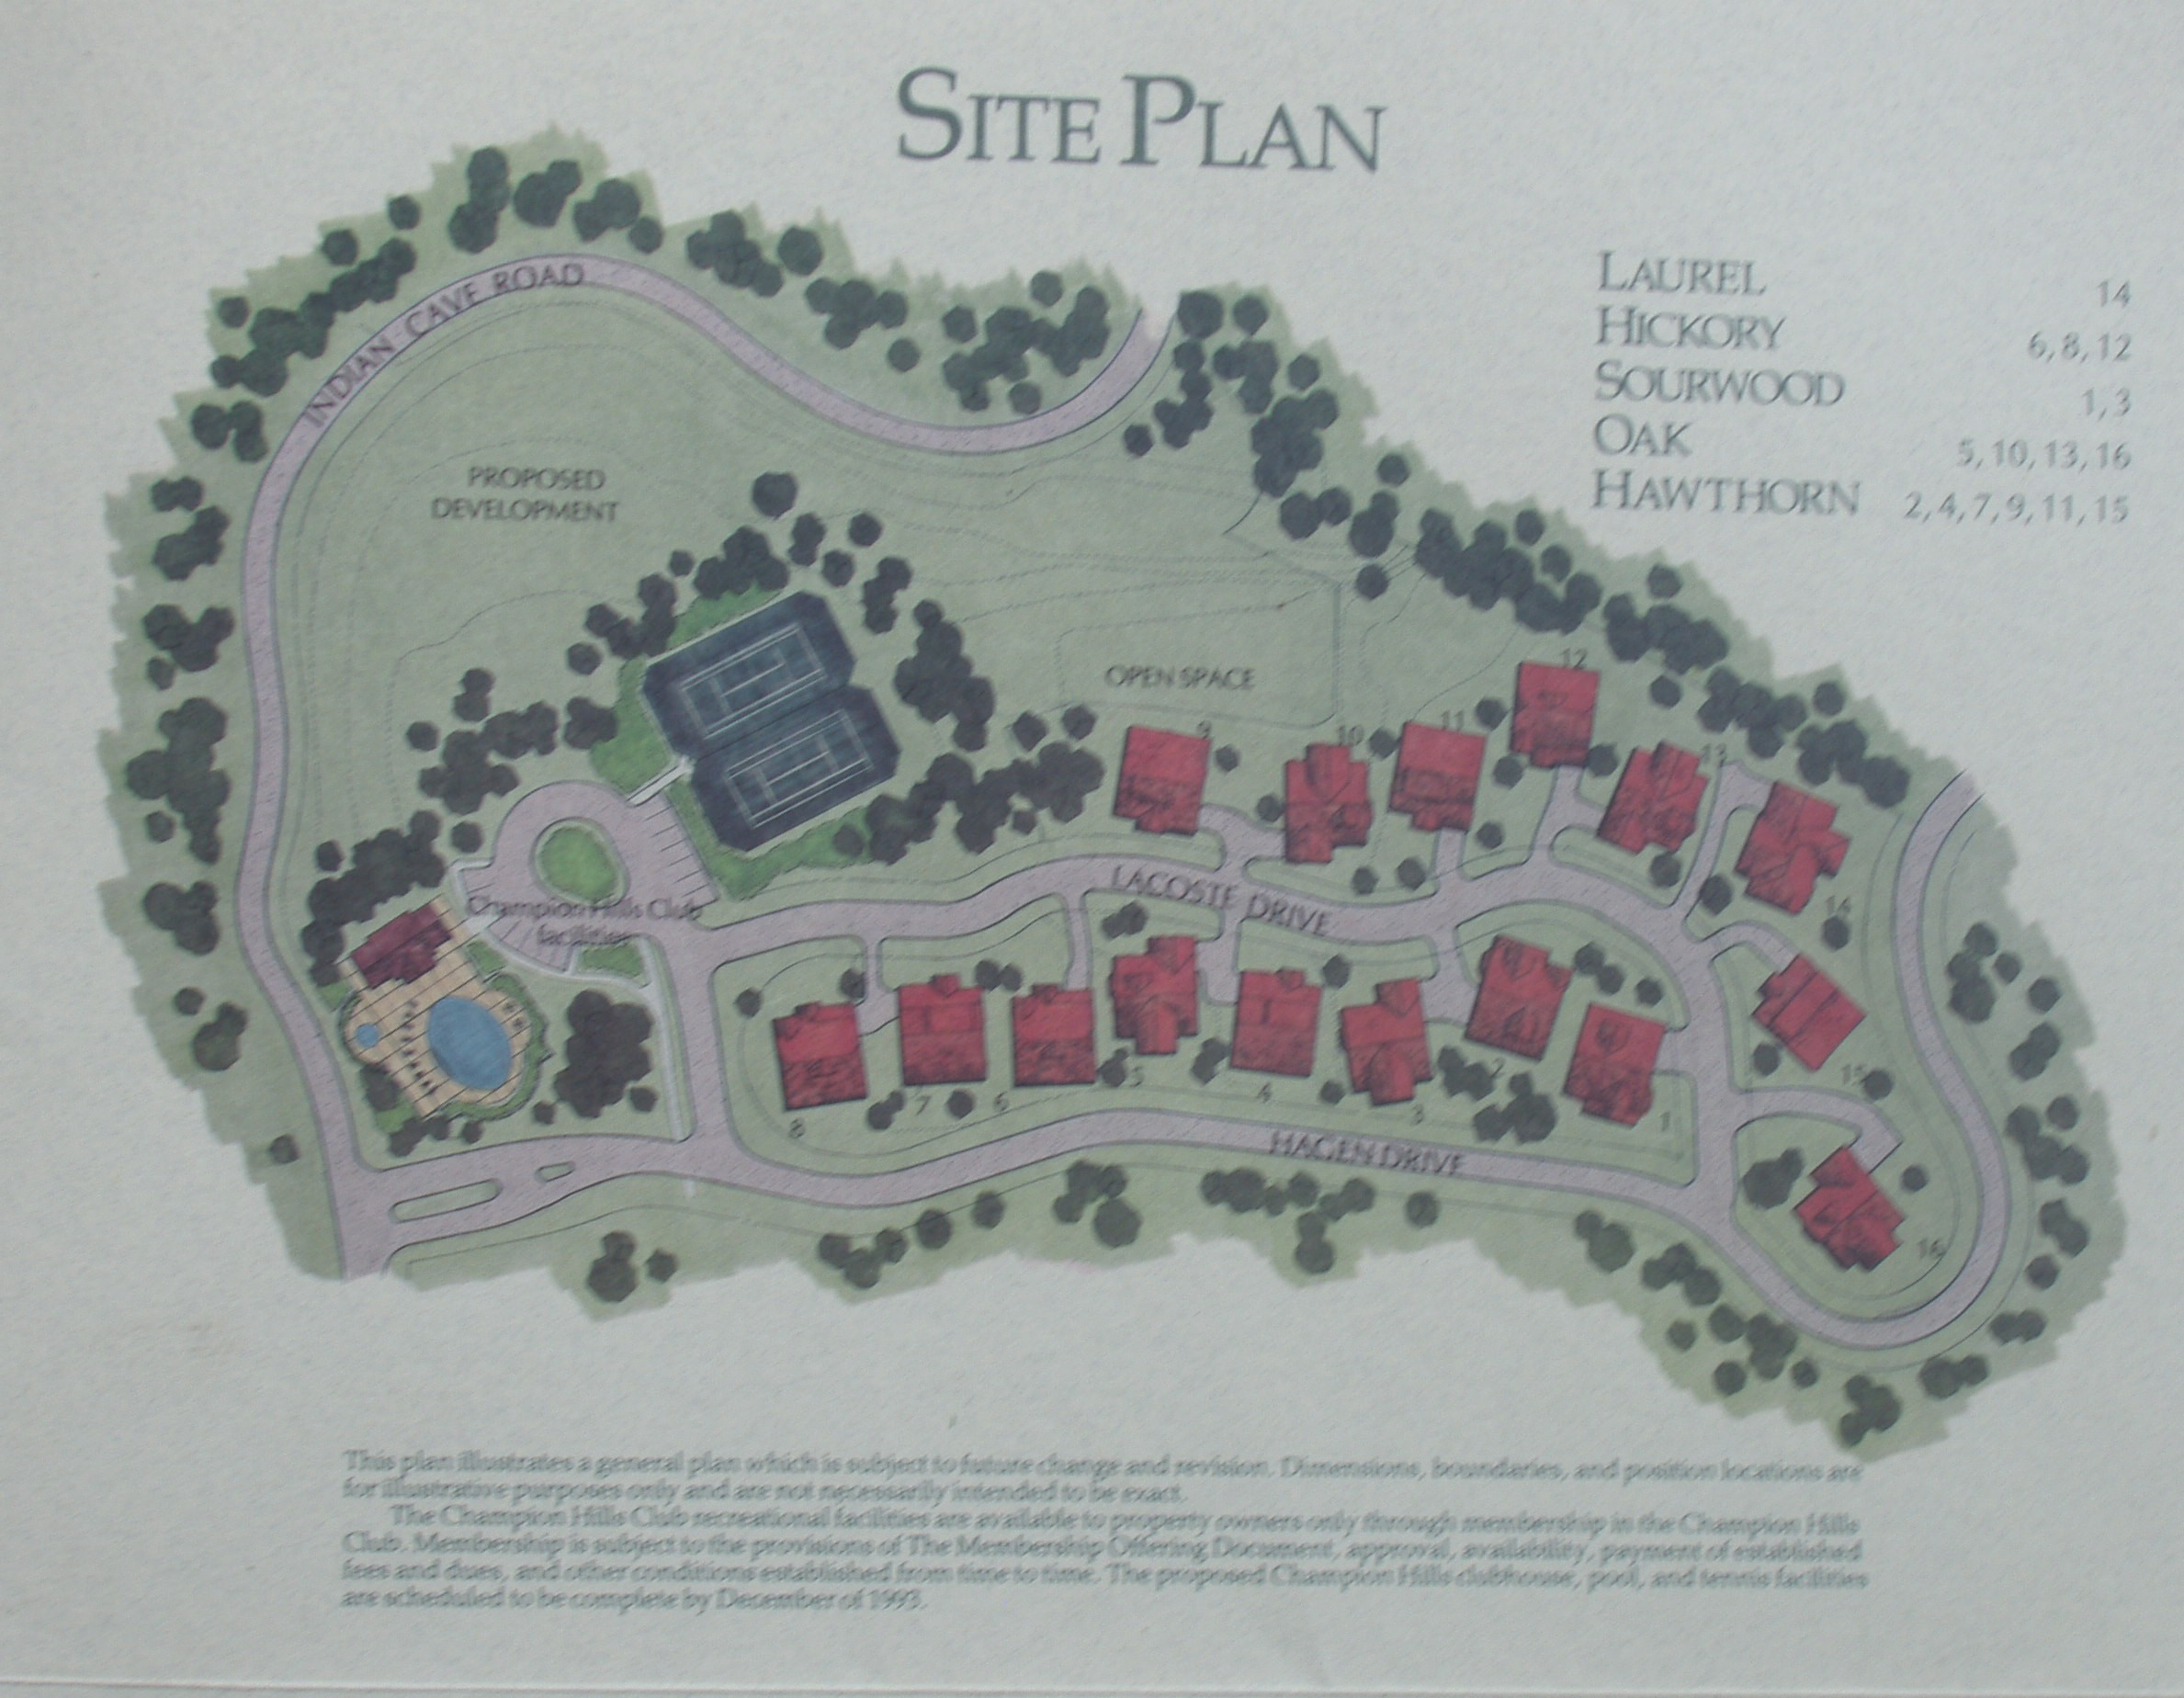 Site Plan: The Champion Hills Club